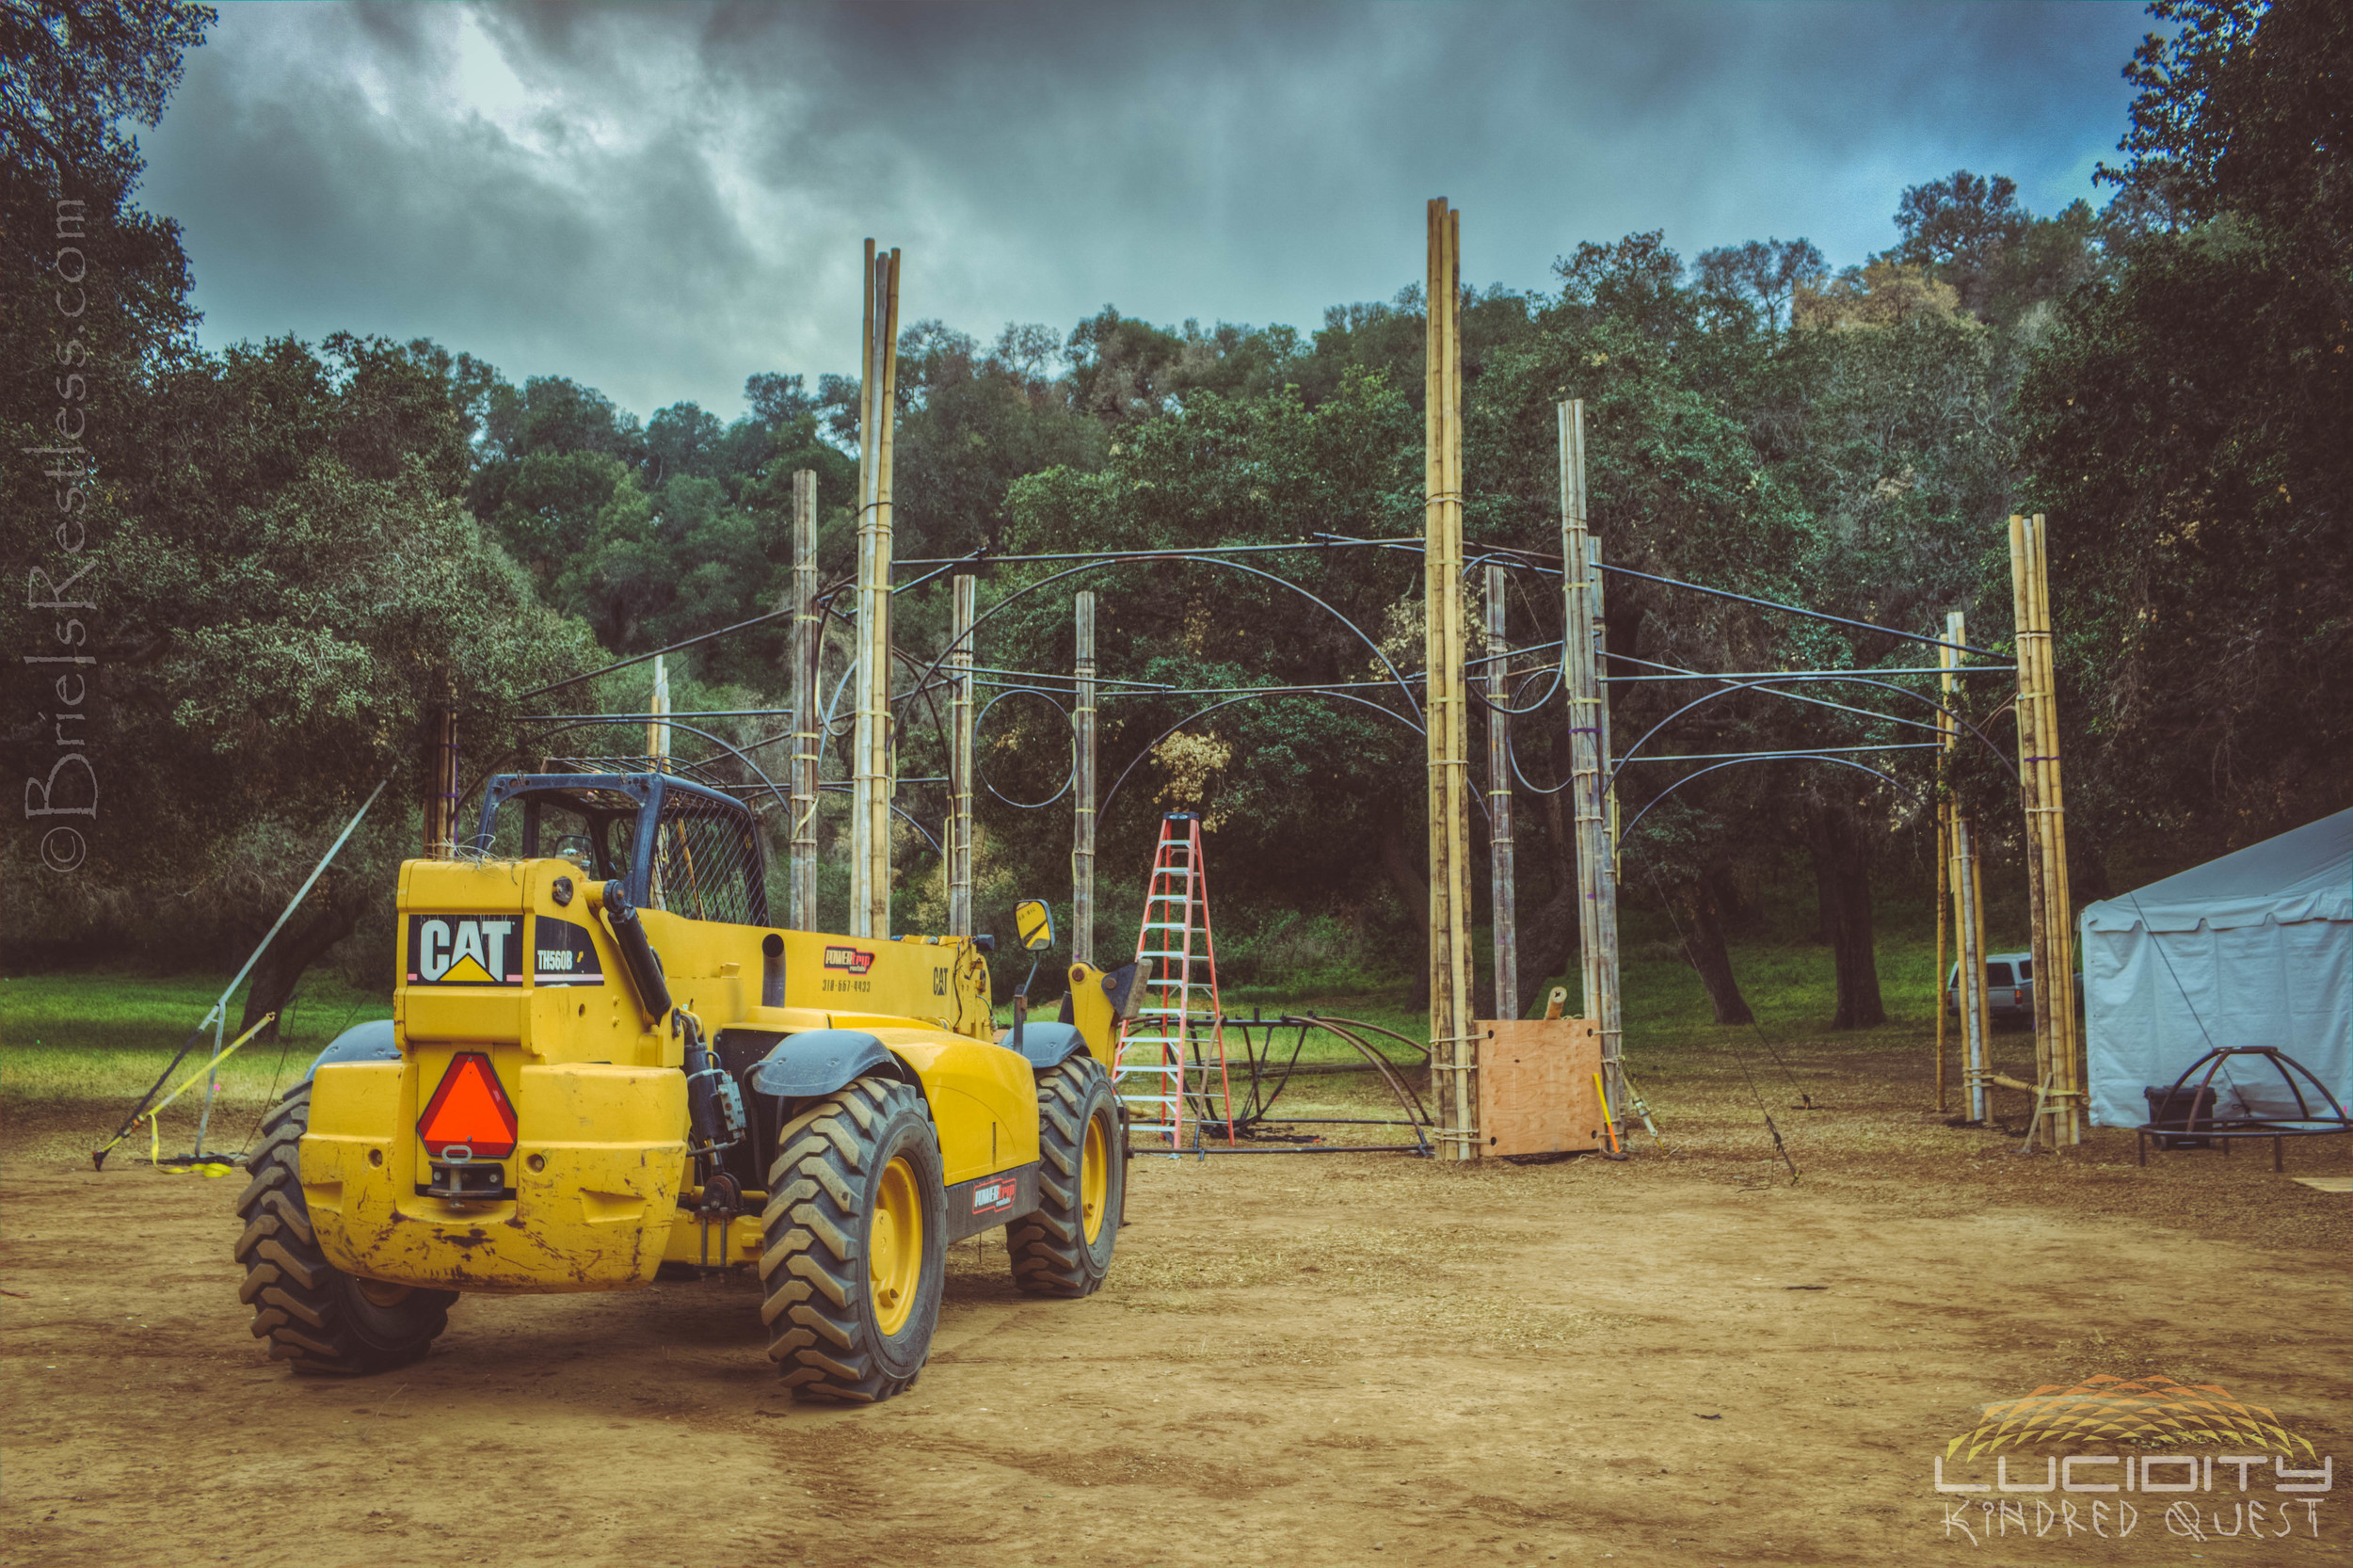 Lucid Stage Build - Tractor - Main Stage - Luciditiy - Kindred Quest - Build - April 2015 (1 of 1)-1.JPG